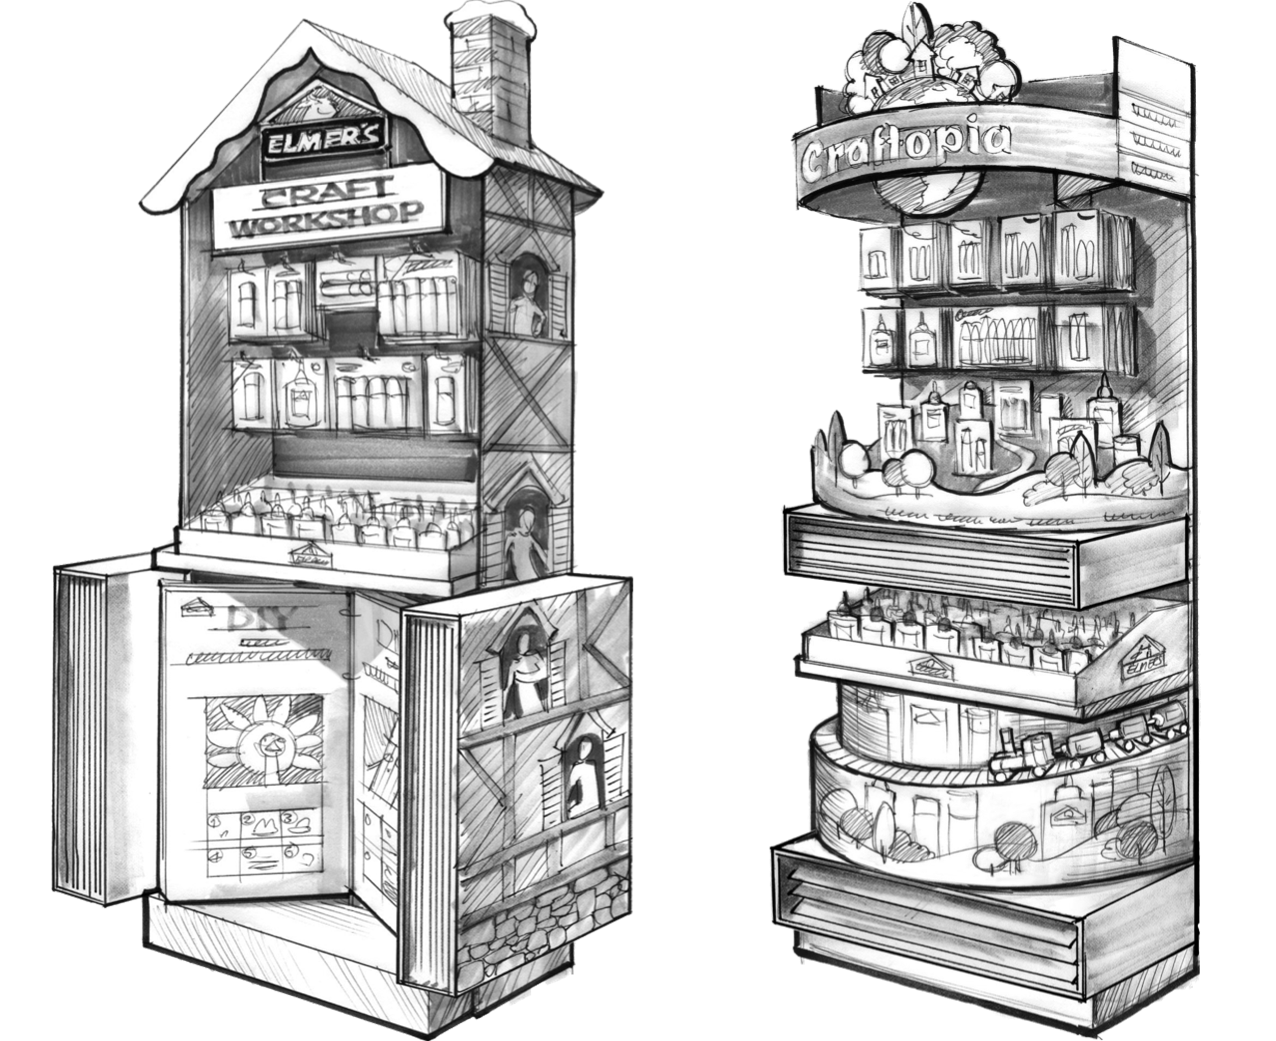 End Cap Tight sketches - Renders by our incredible illustrator, Vitaliy, based on my initial sketches.